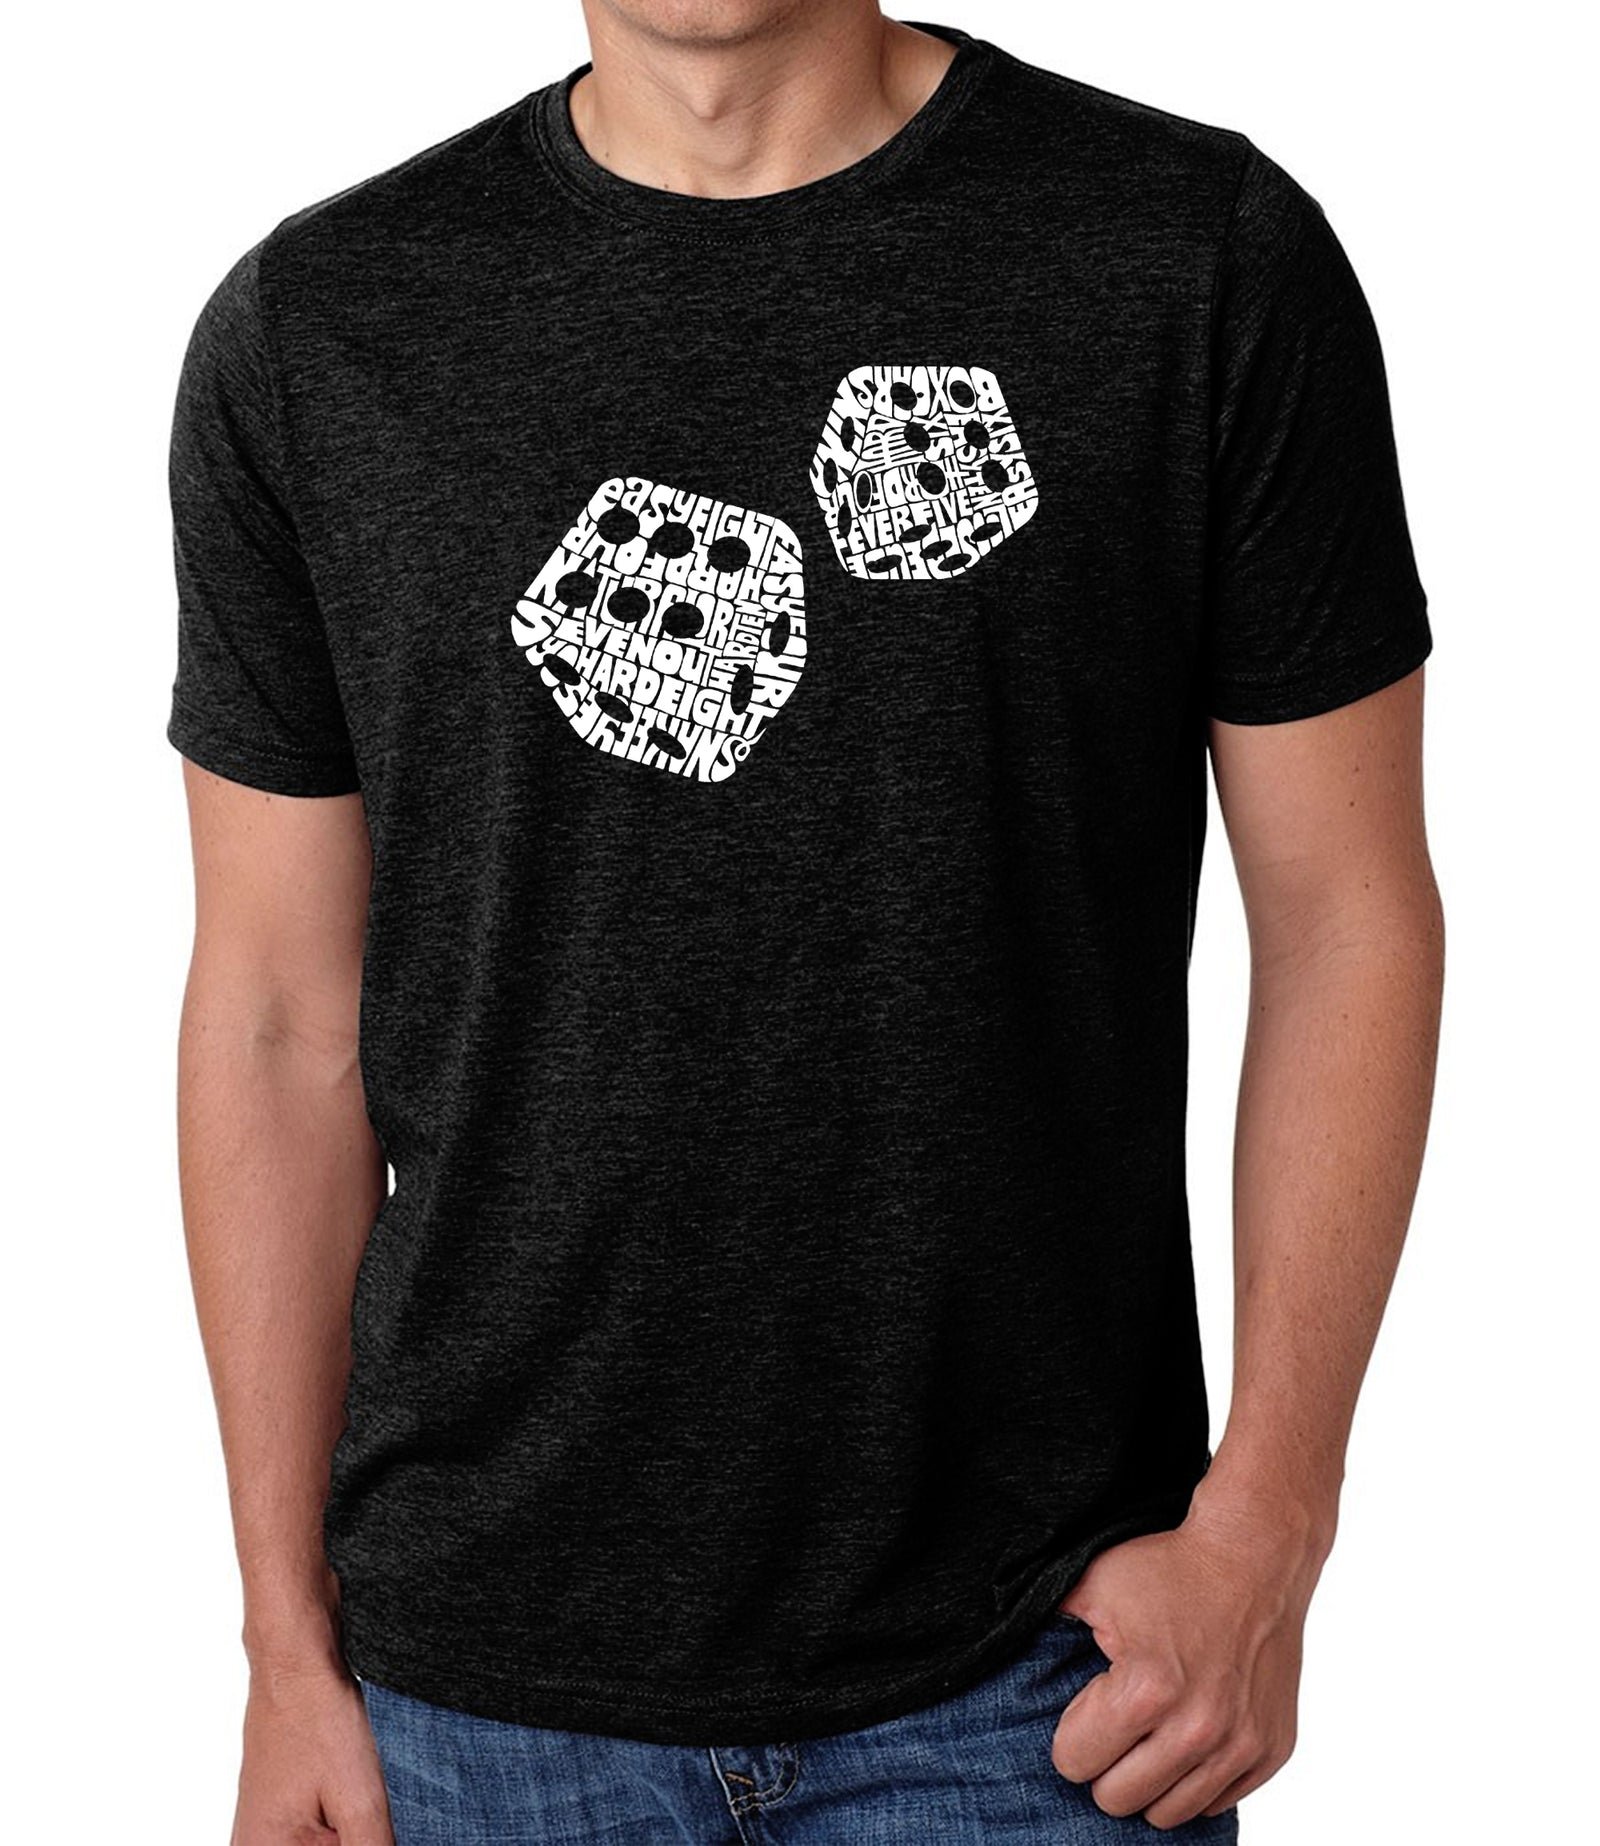 Men's Premium Blend Word Art T-shirt - DIFFERENT ROLLS THROWN IN THE GAME OF CRAPS